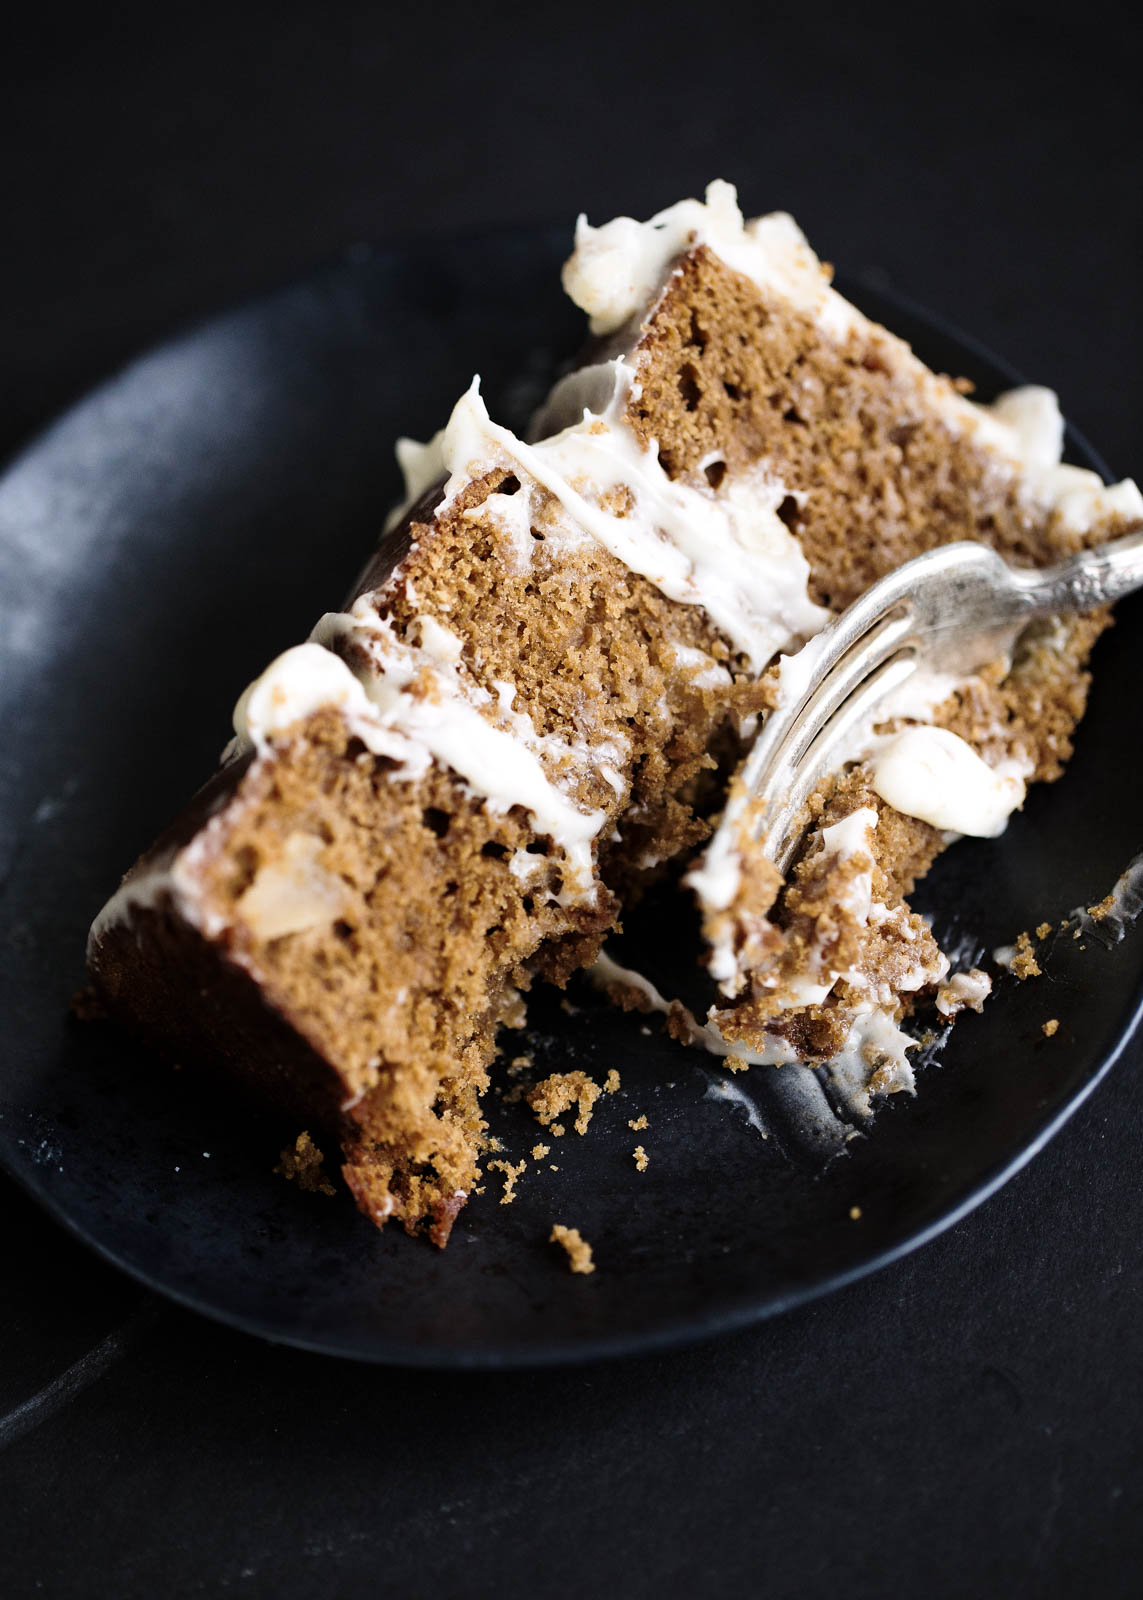 A moist ginger molasses cake with fresh apples and a creamy mascarpone frosting. Talk about fall cake goals!!